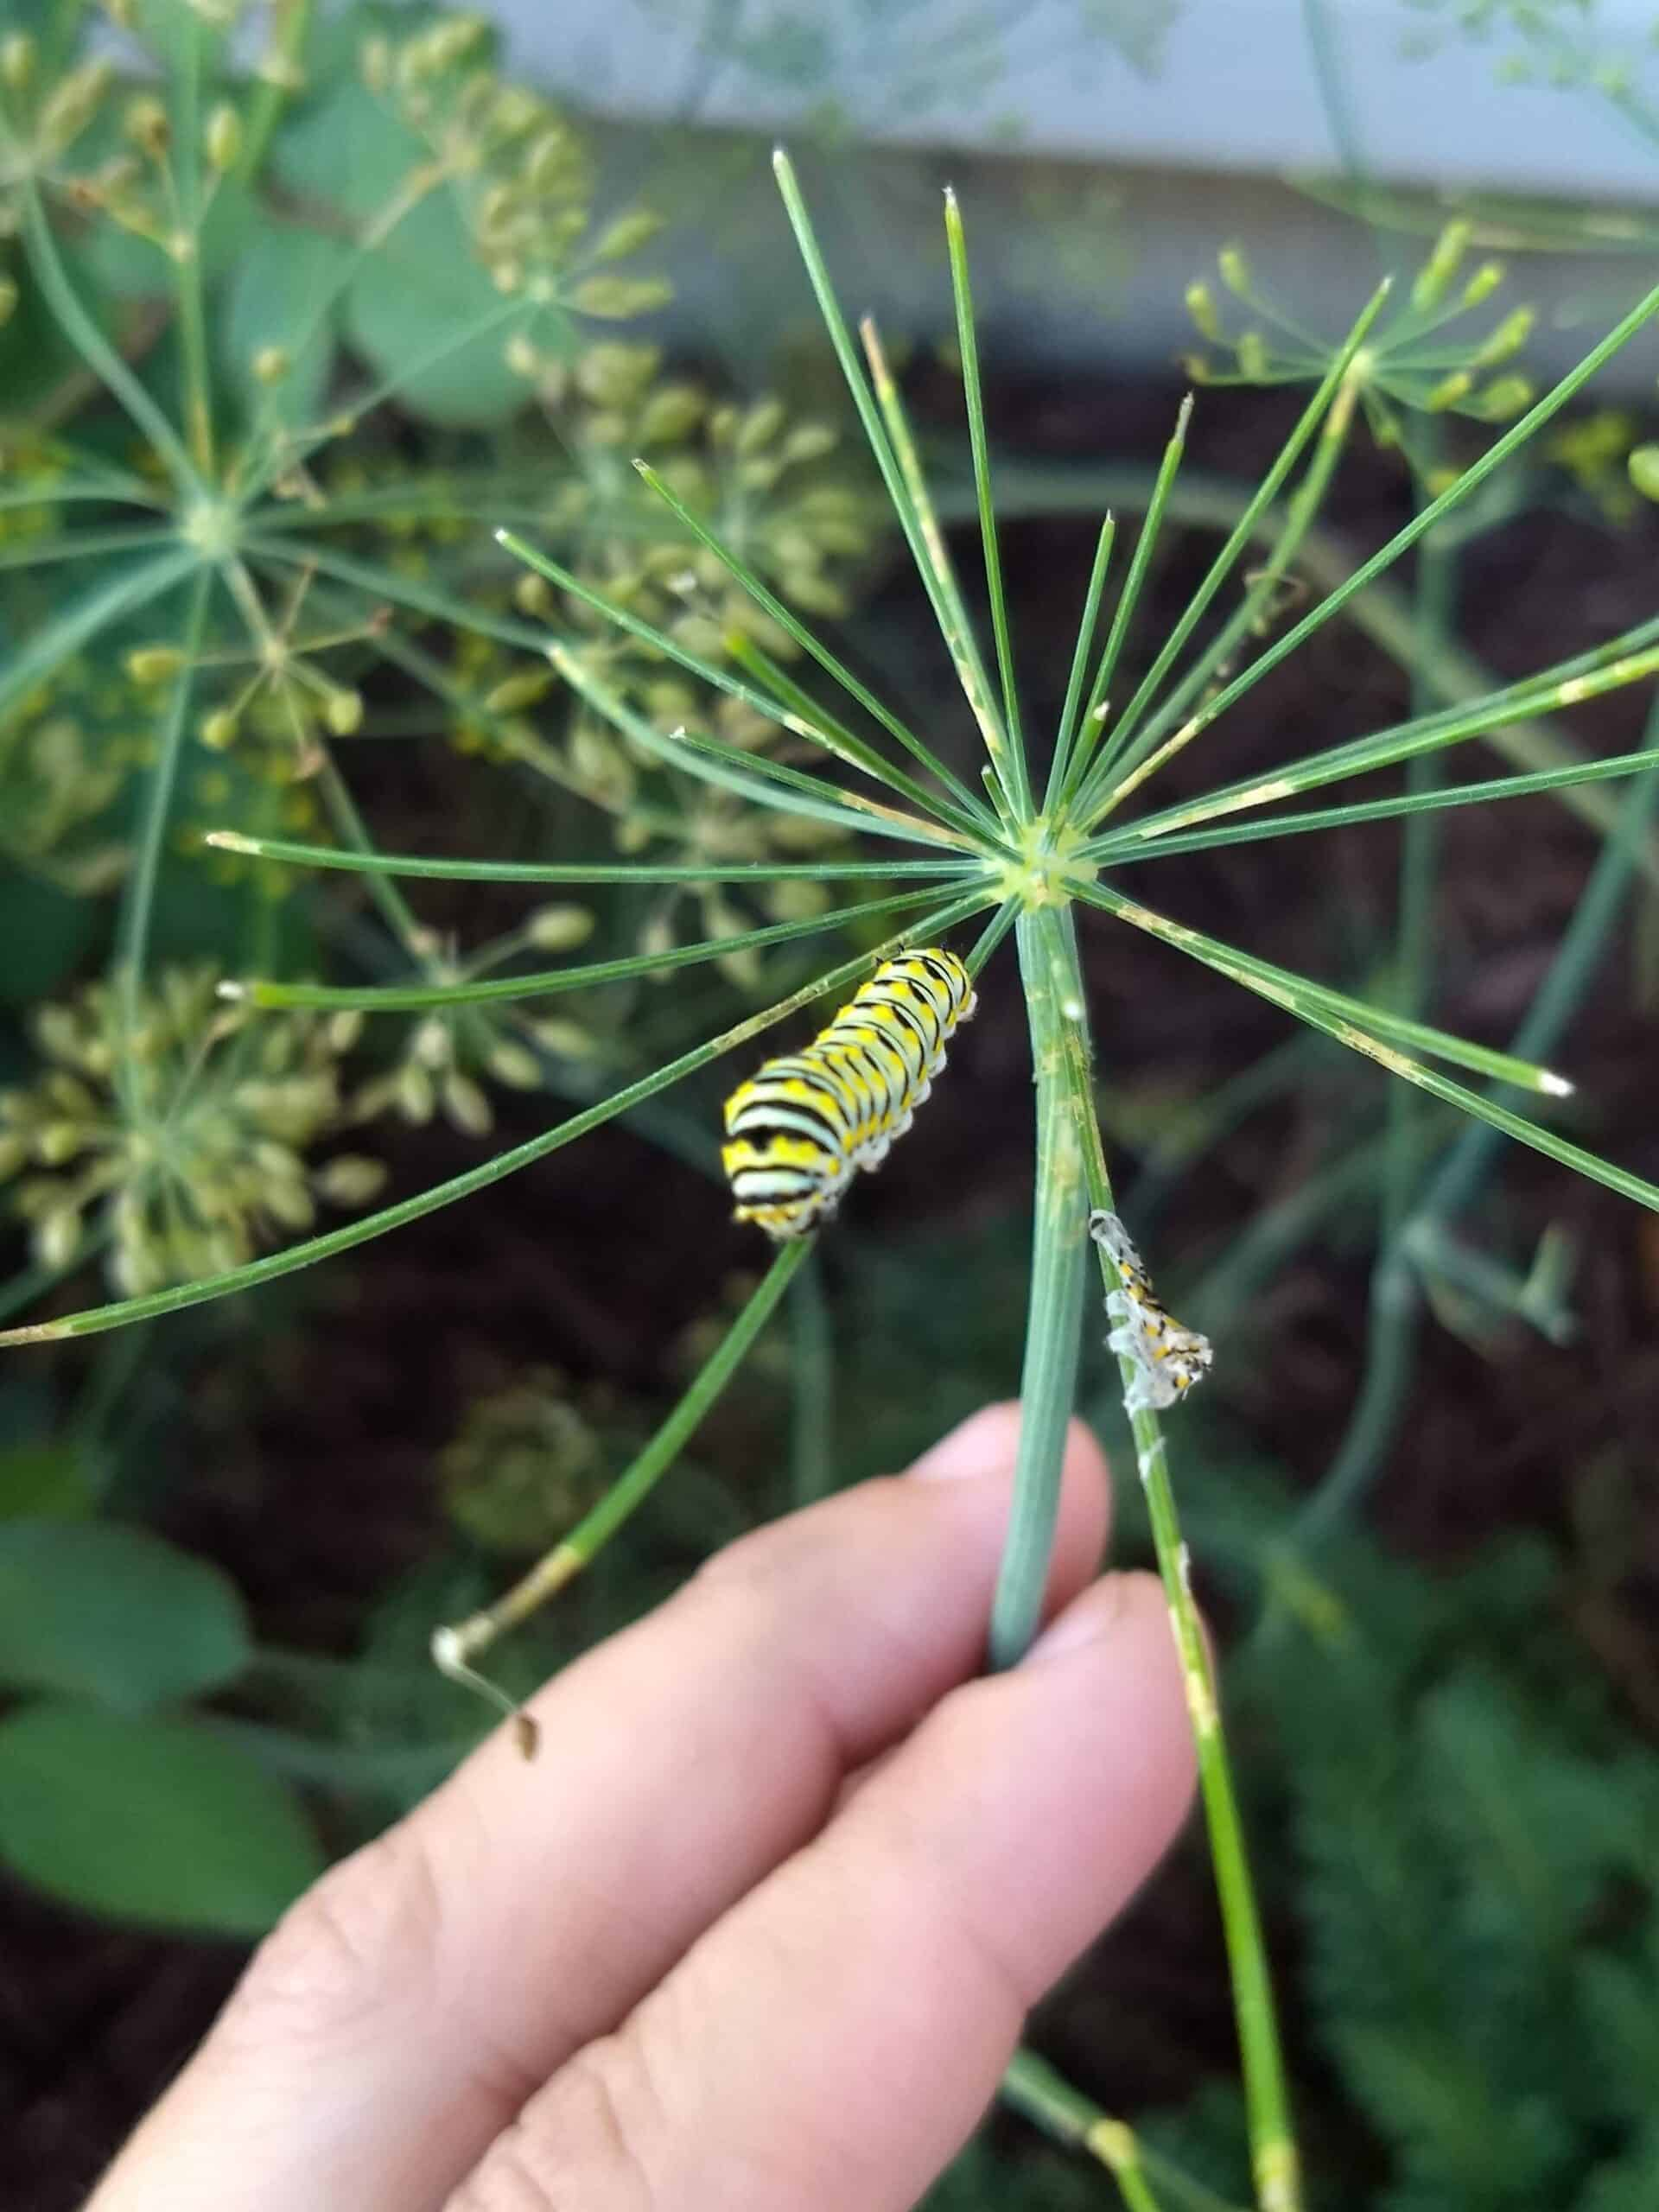 Black Swallowtail Butterfly on a Dill Plant Build a Homestead from Scratch Garden